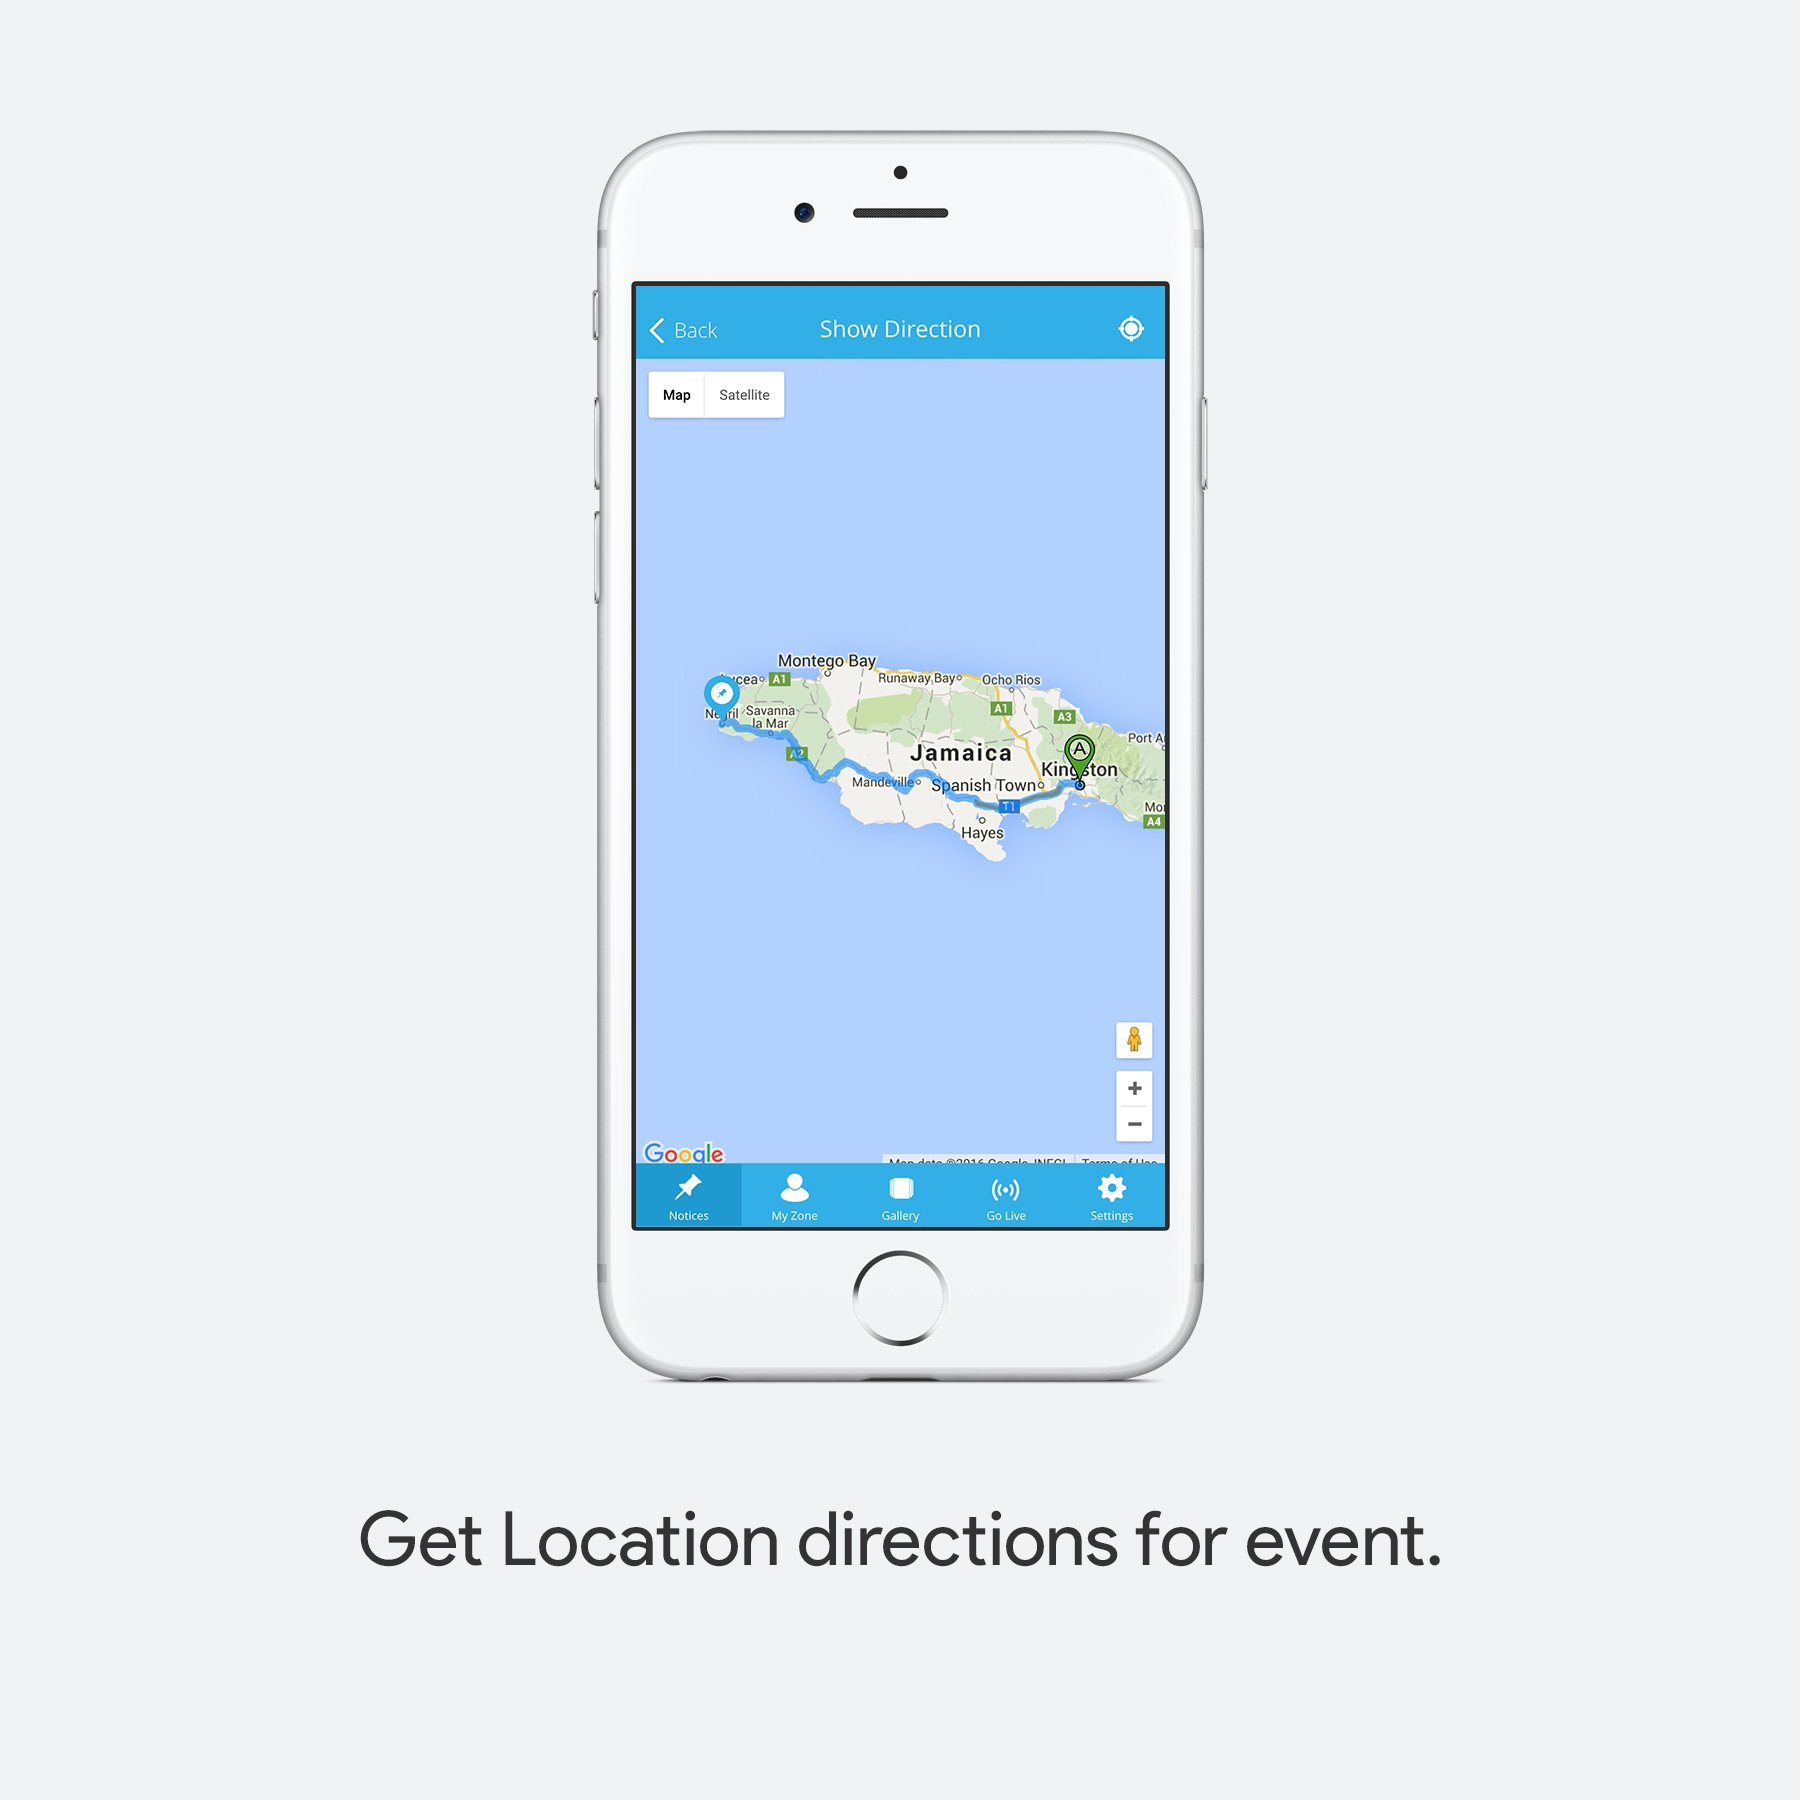 Get location directions for event